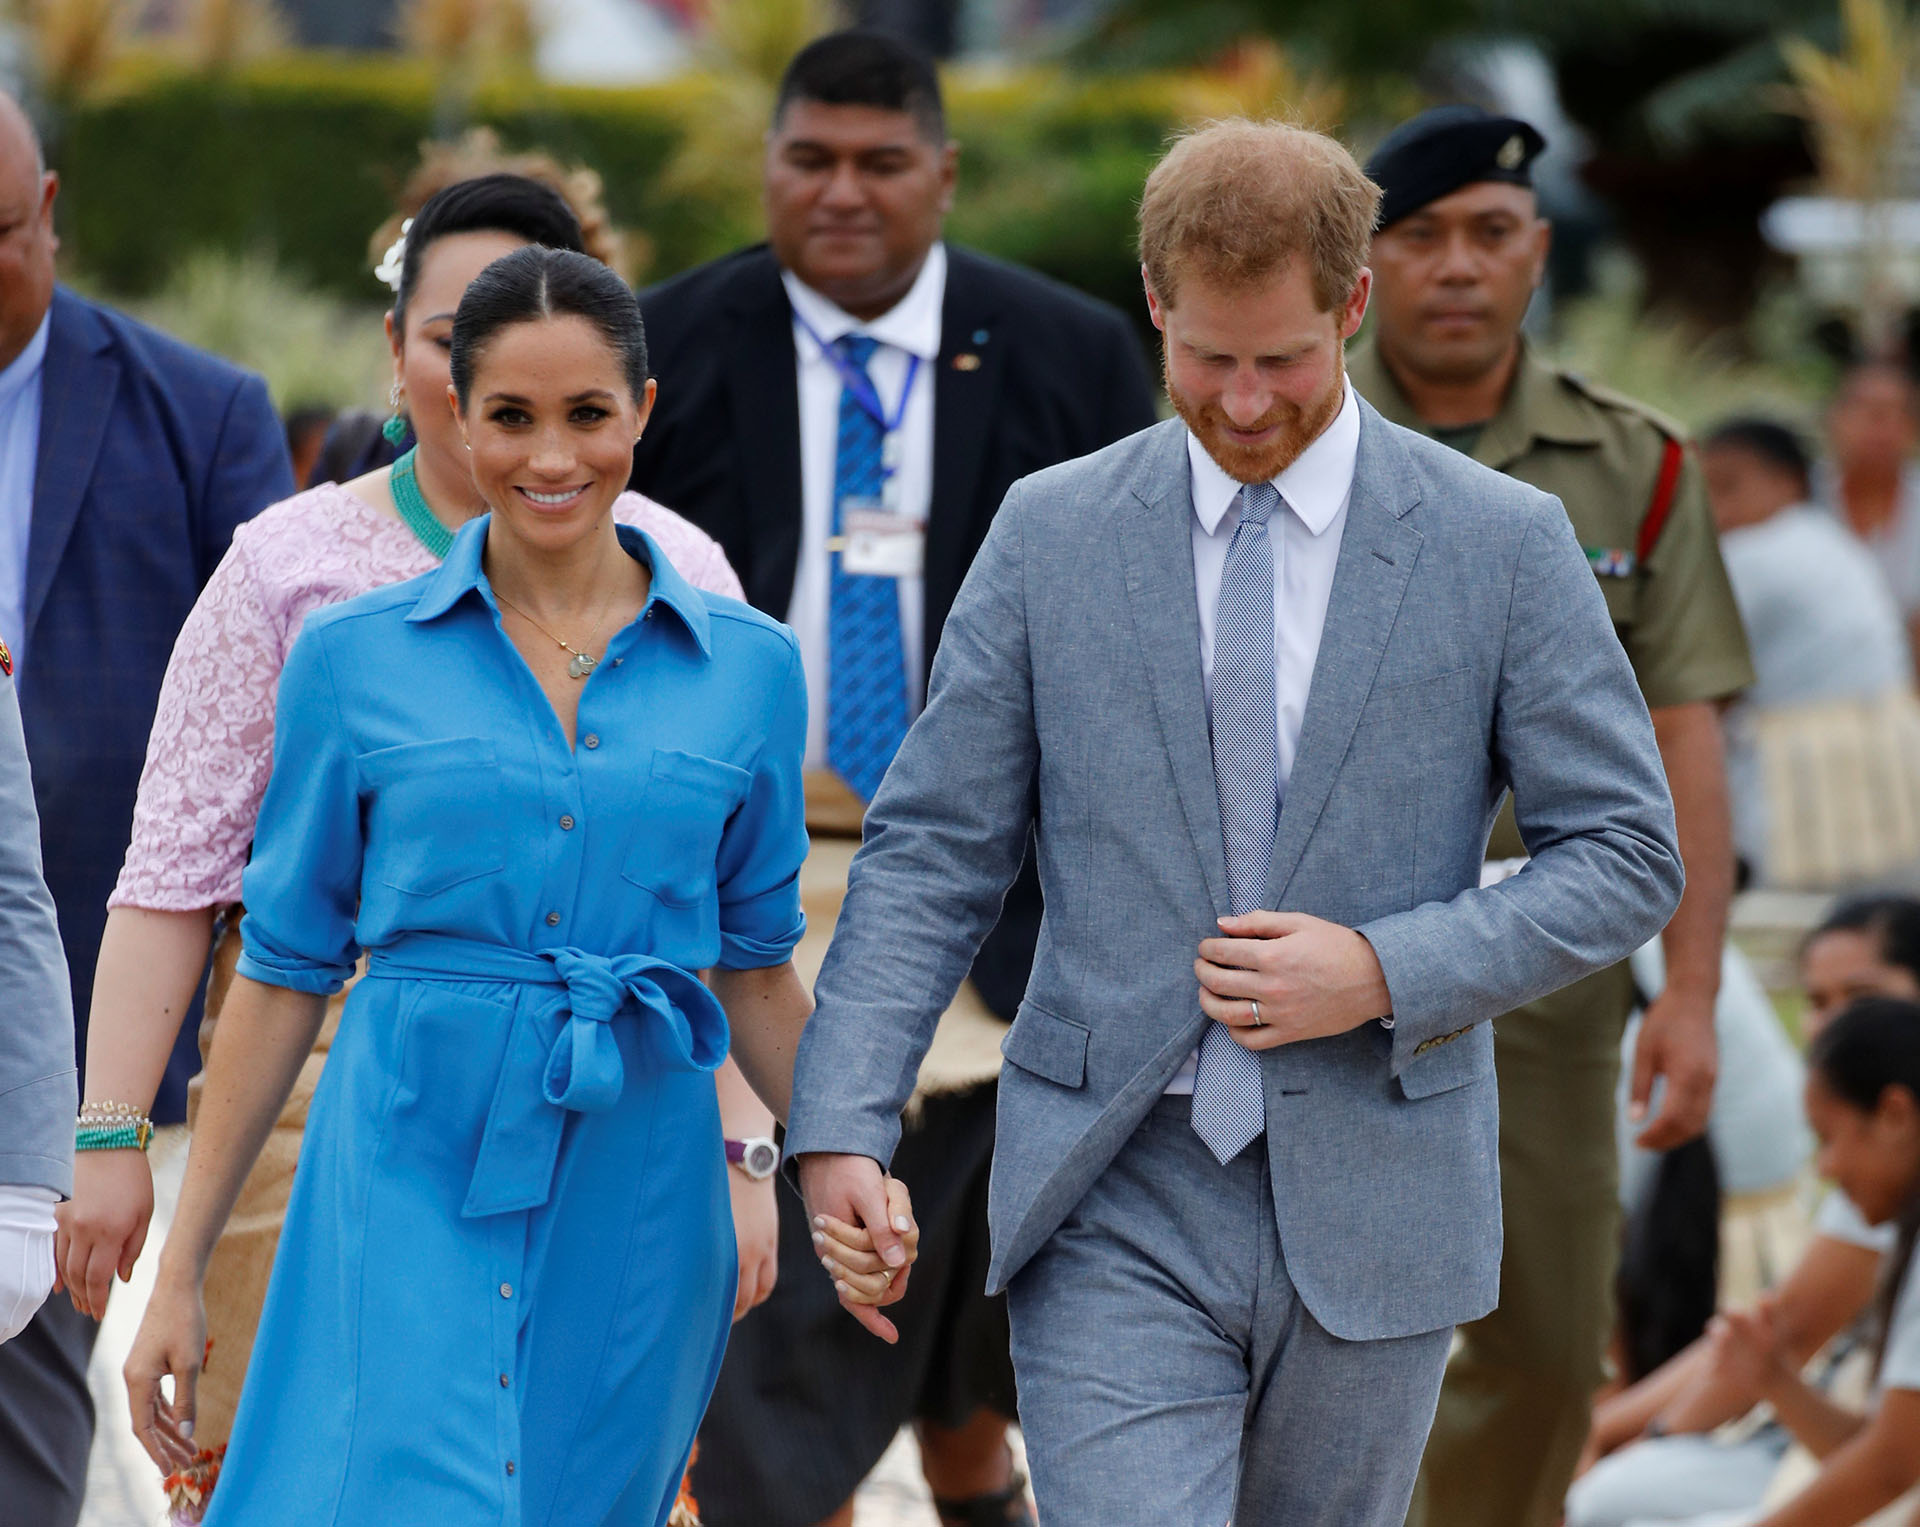 Britain's Prince Harry and Meghan, Duchess of Sussex walk together as they depart from Fua'amotu International Airport in Tonga